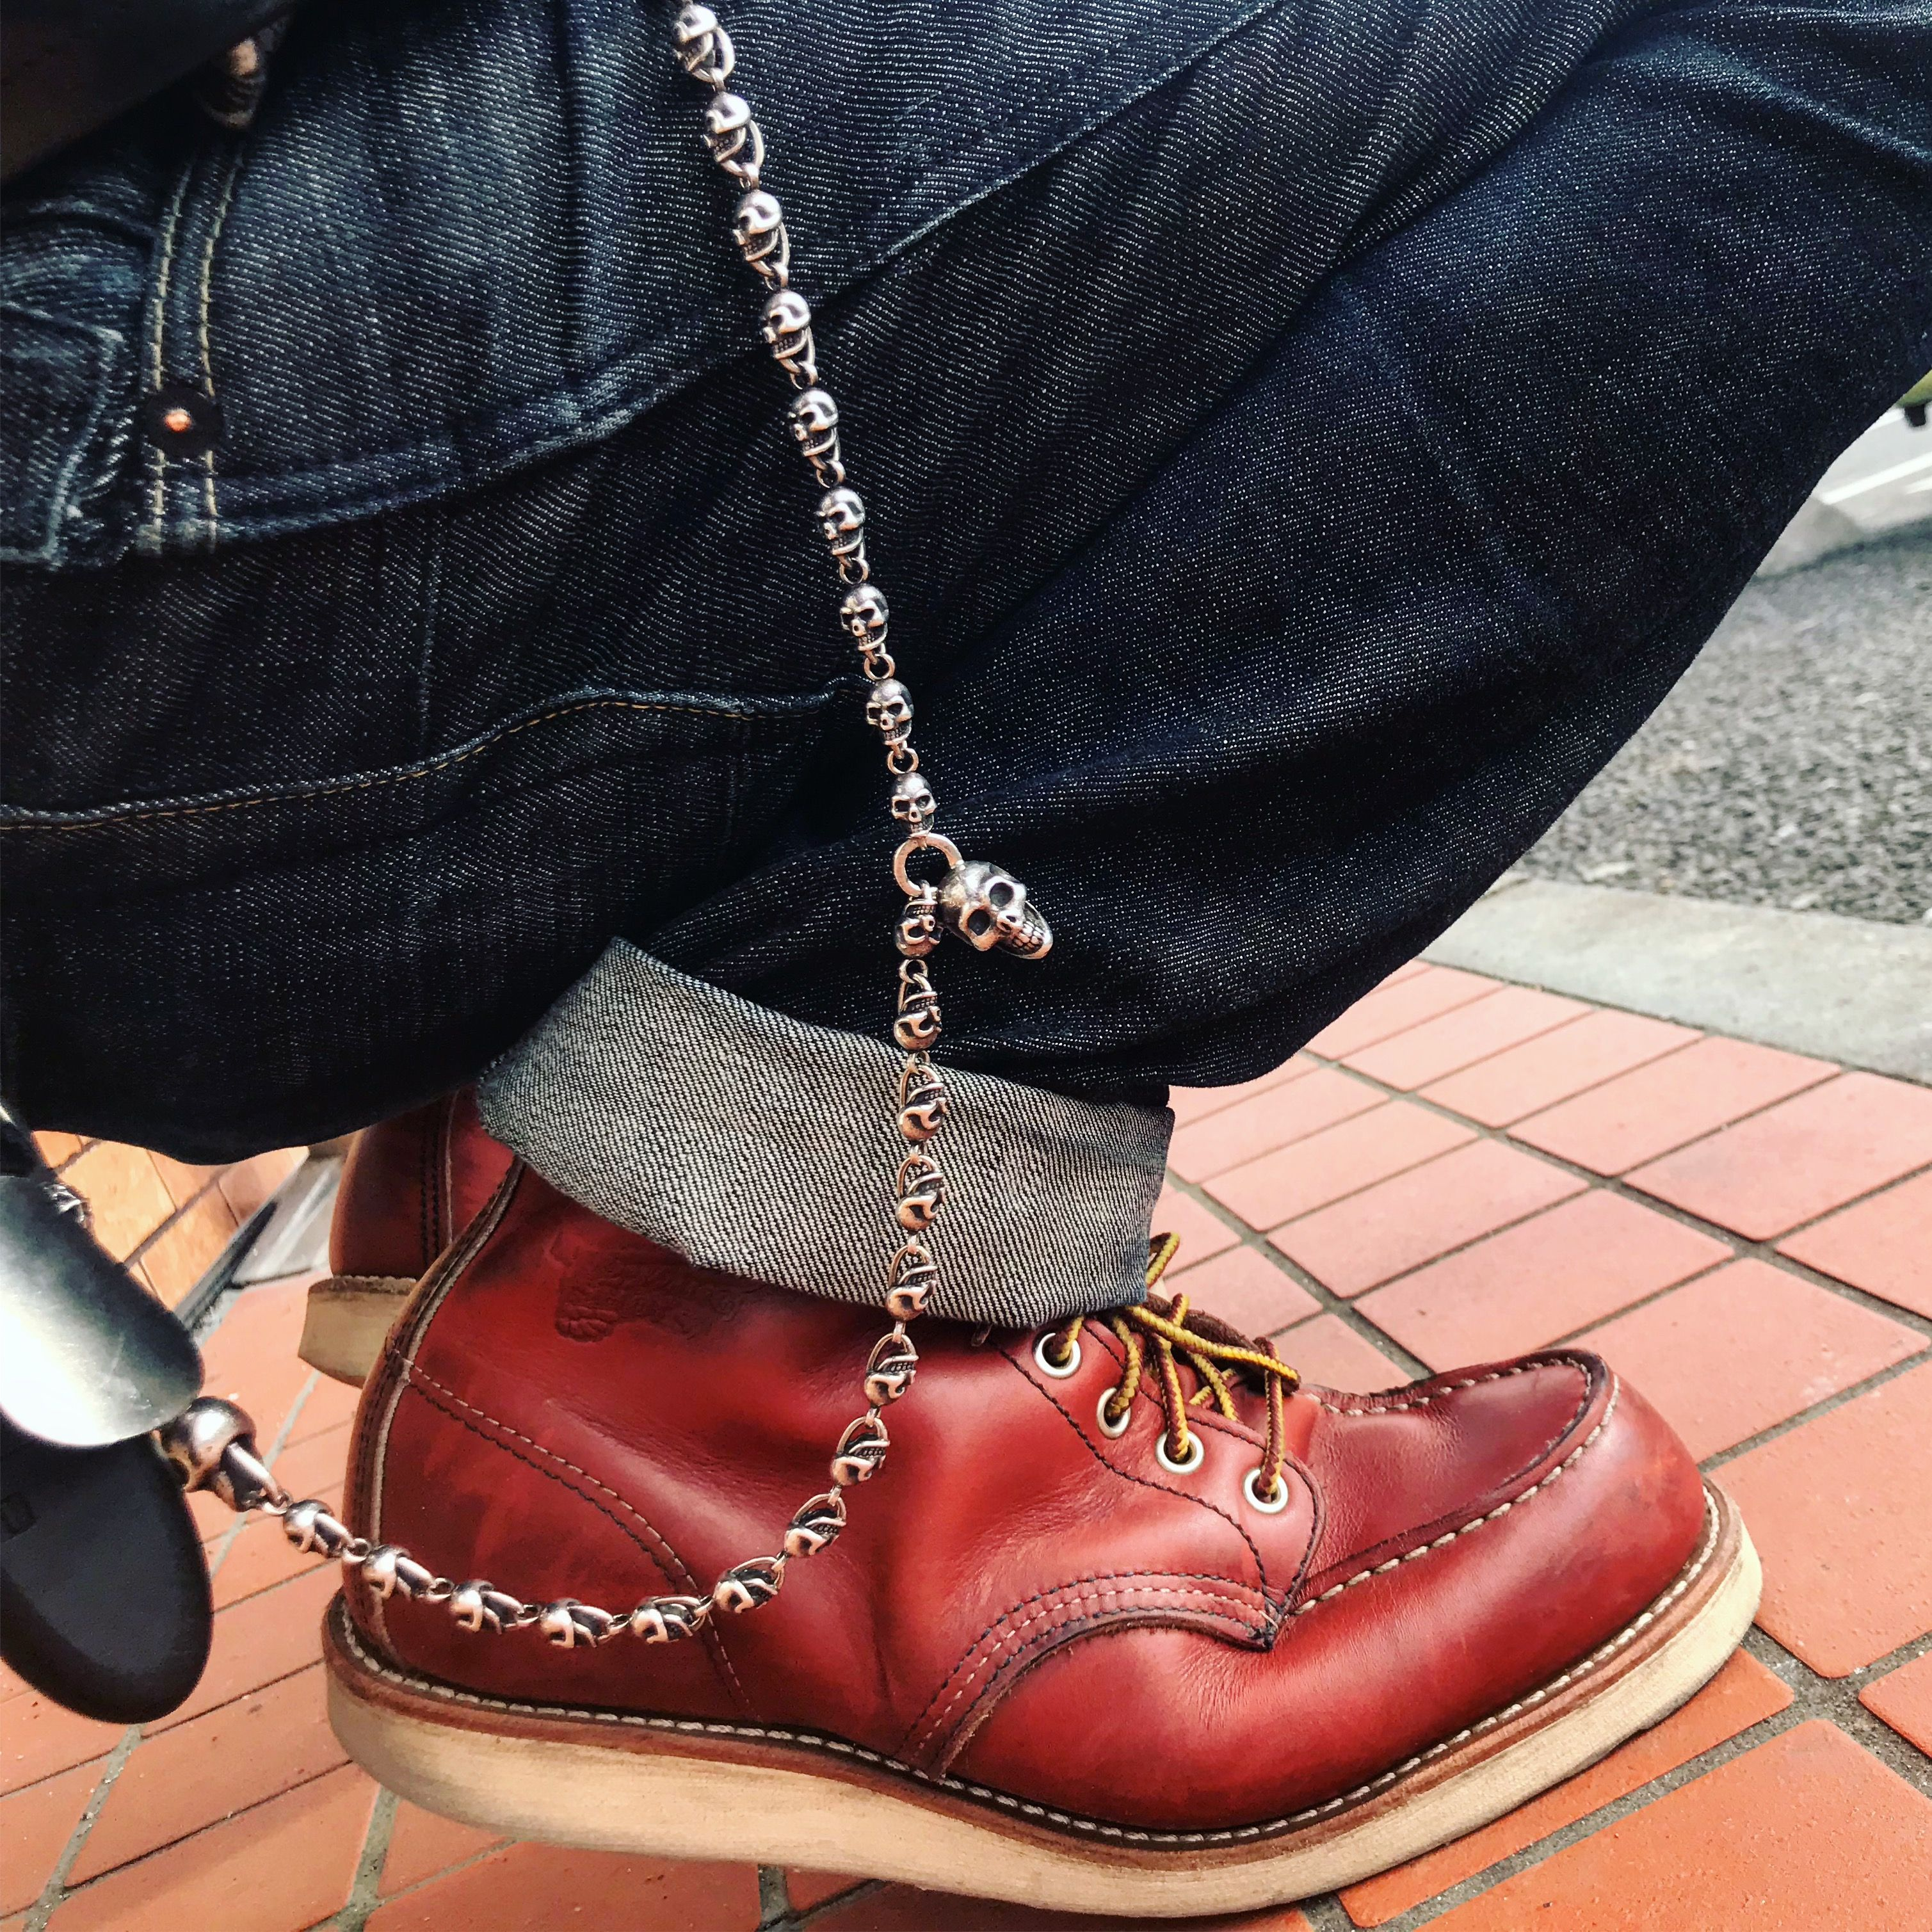 46++ Red wing slip on boots ideas ideas in 2021